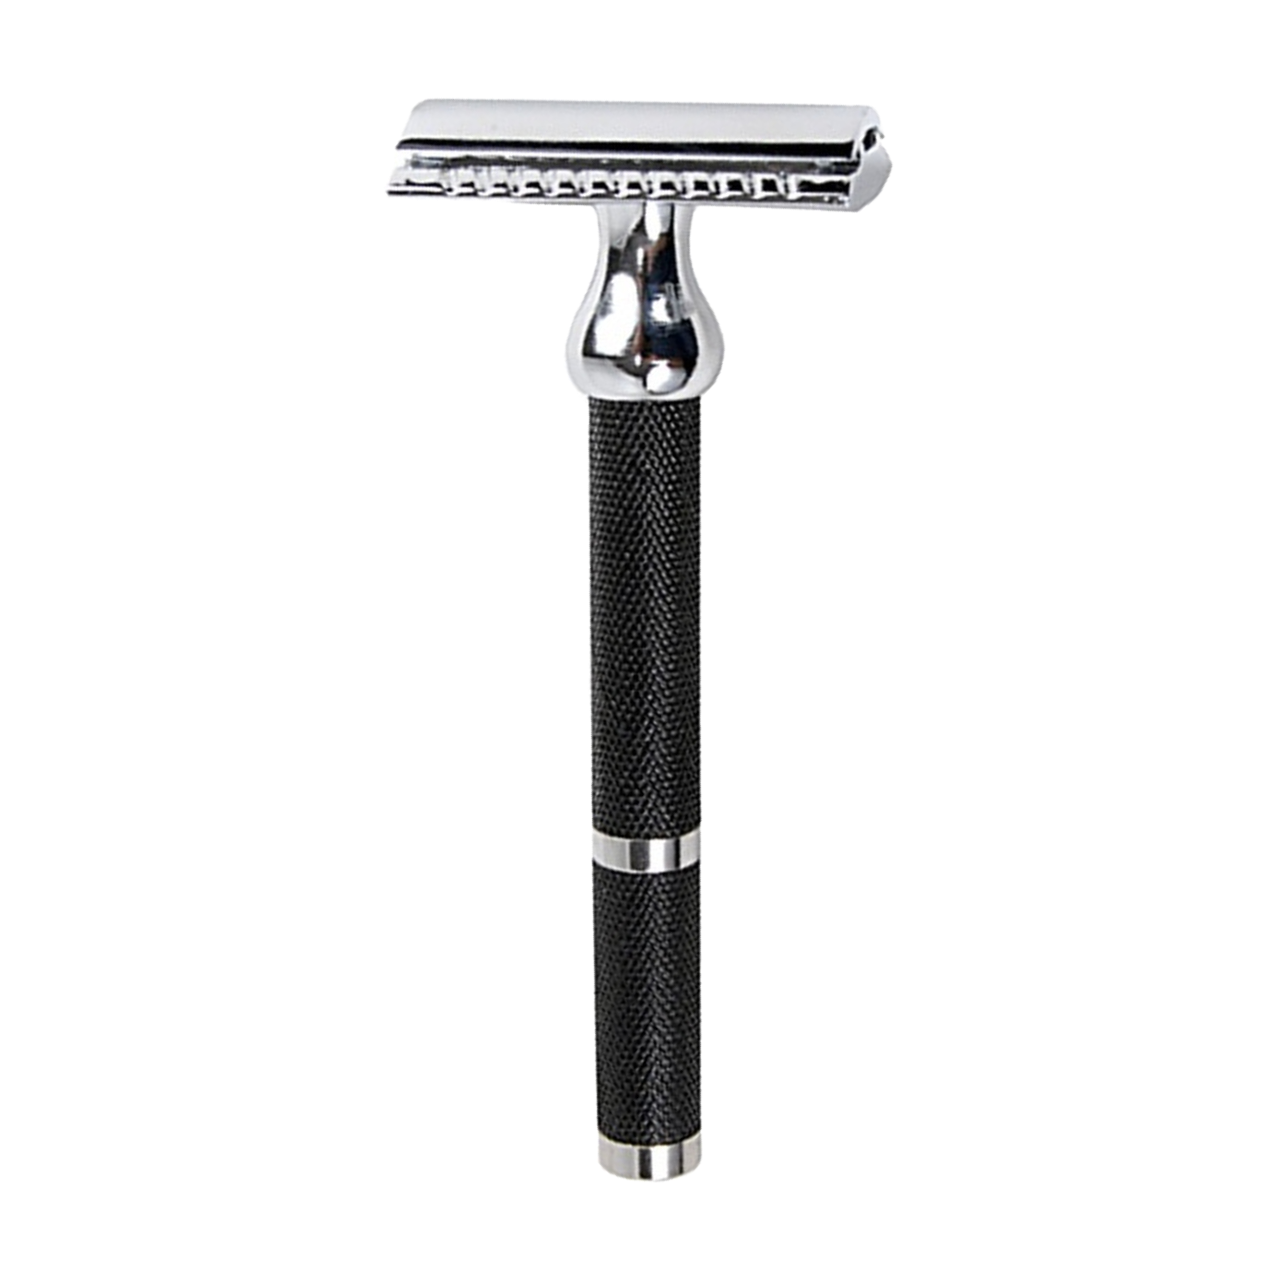 Parker 71R - Long Handle Black and Chrome Safety Razor